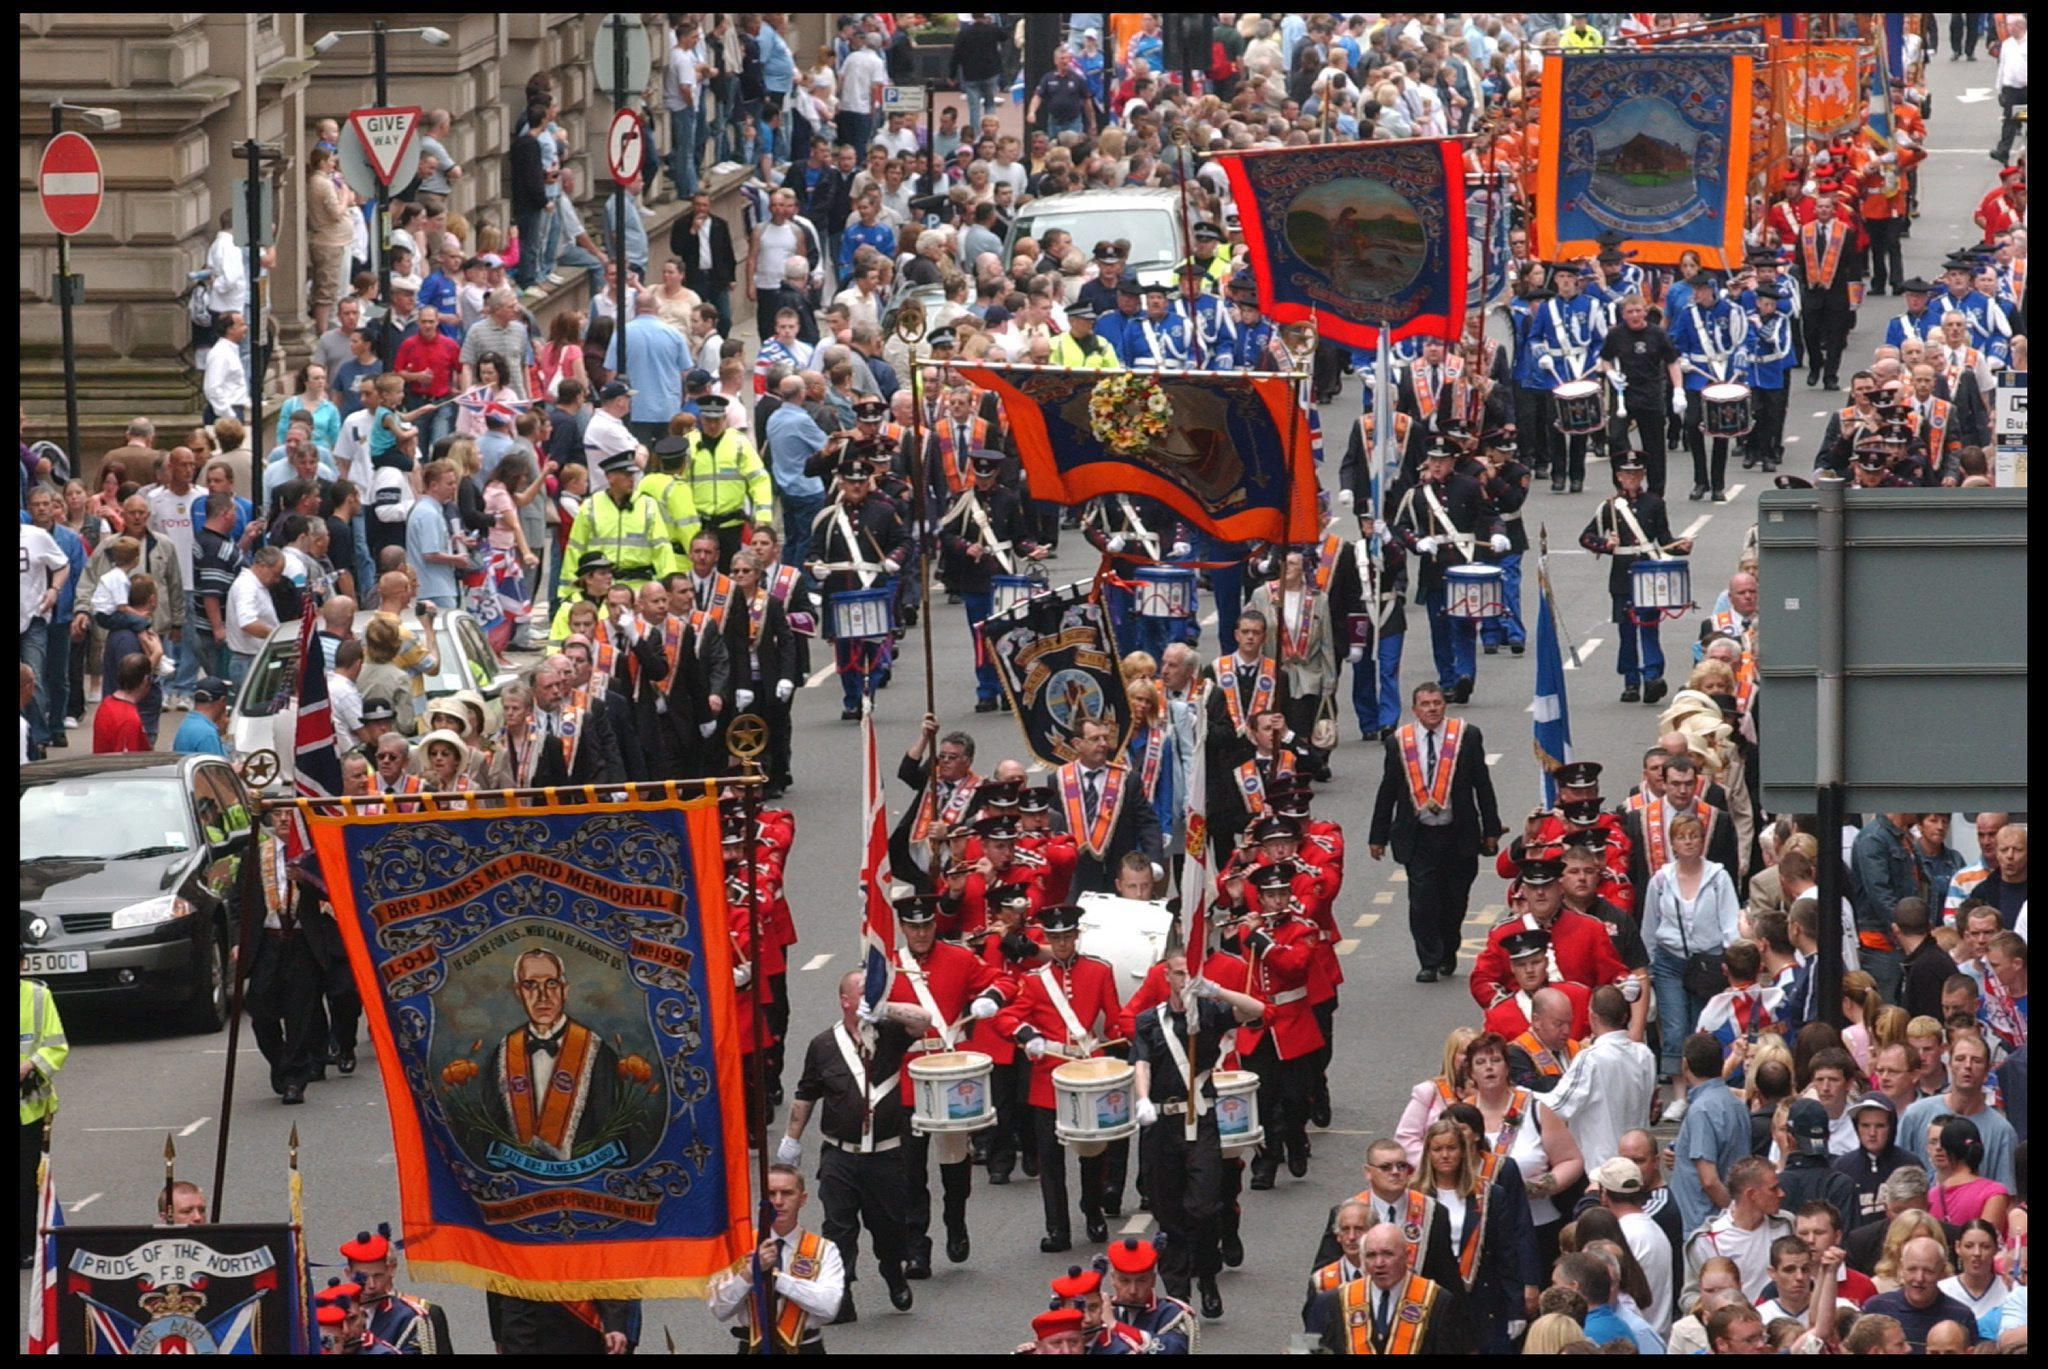 Road closures in place for Orange Walk in Alloa